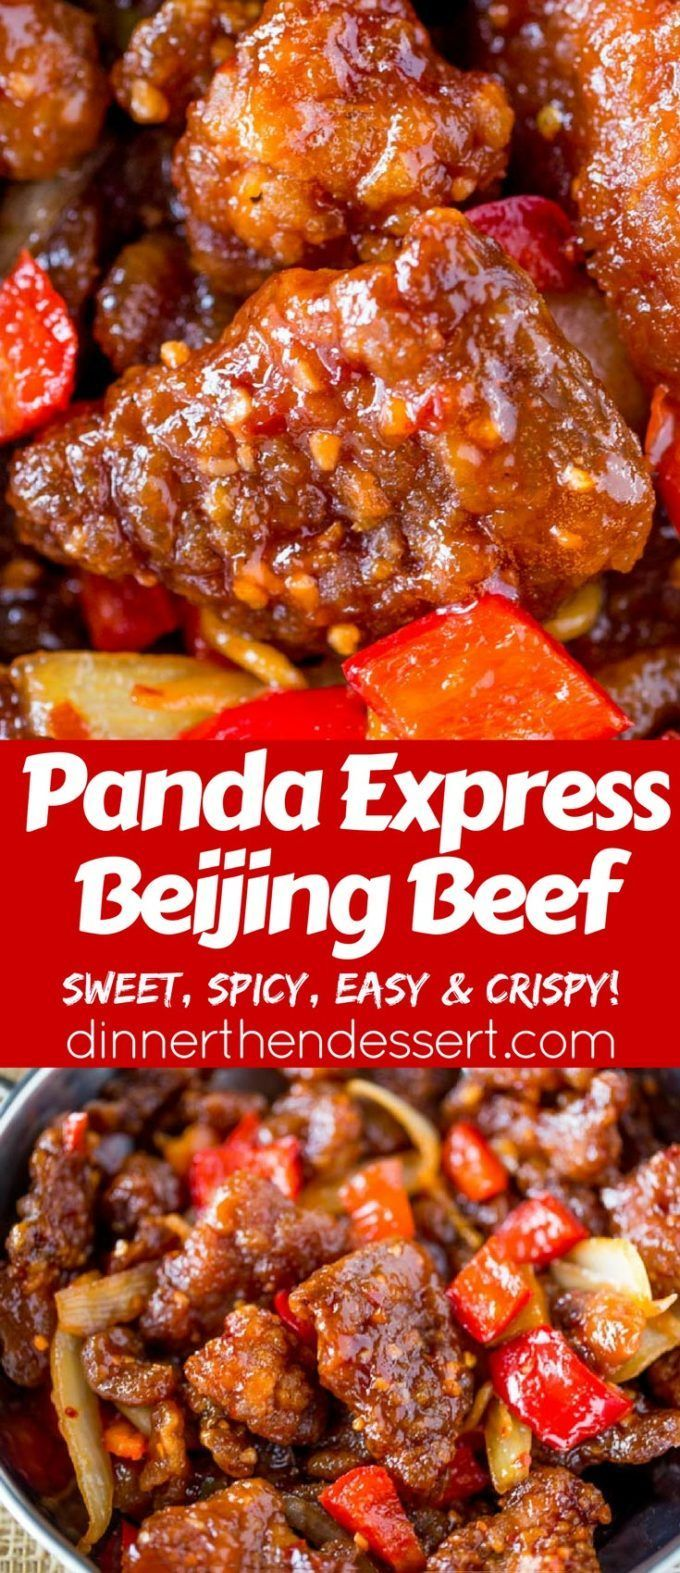 Panda Express Beijing Beef is an awesome copycat of the original with crispy strips of marinated beef, bell peppers and sliced onions, tossed in the wok with a tangy sweet and spicy sauce.